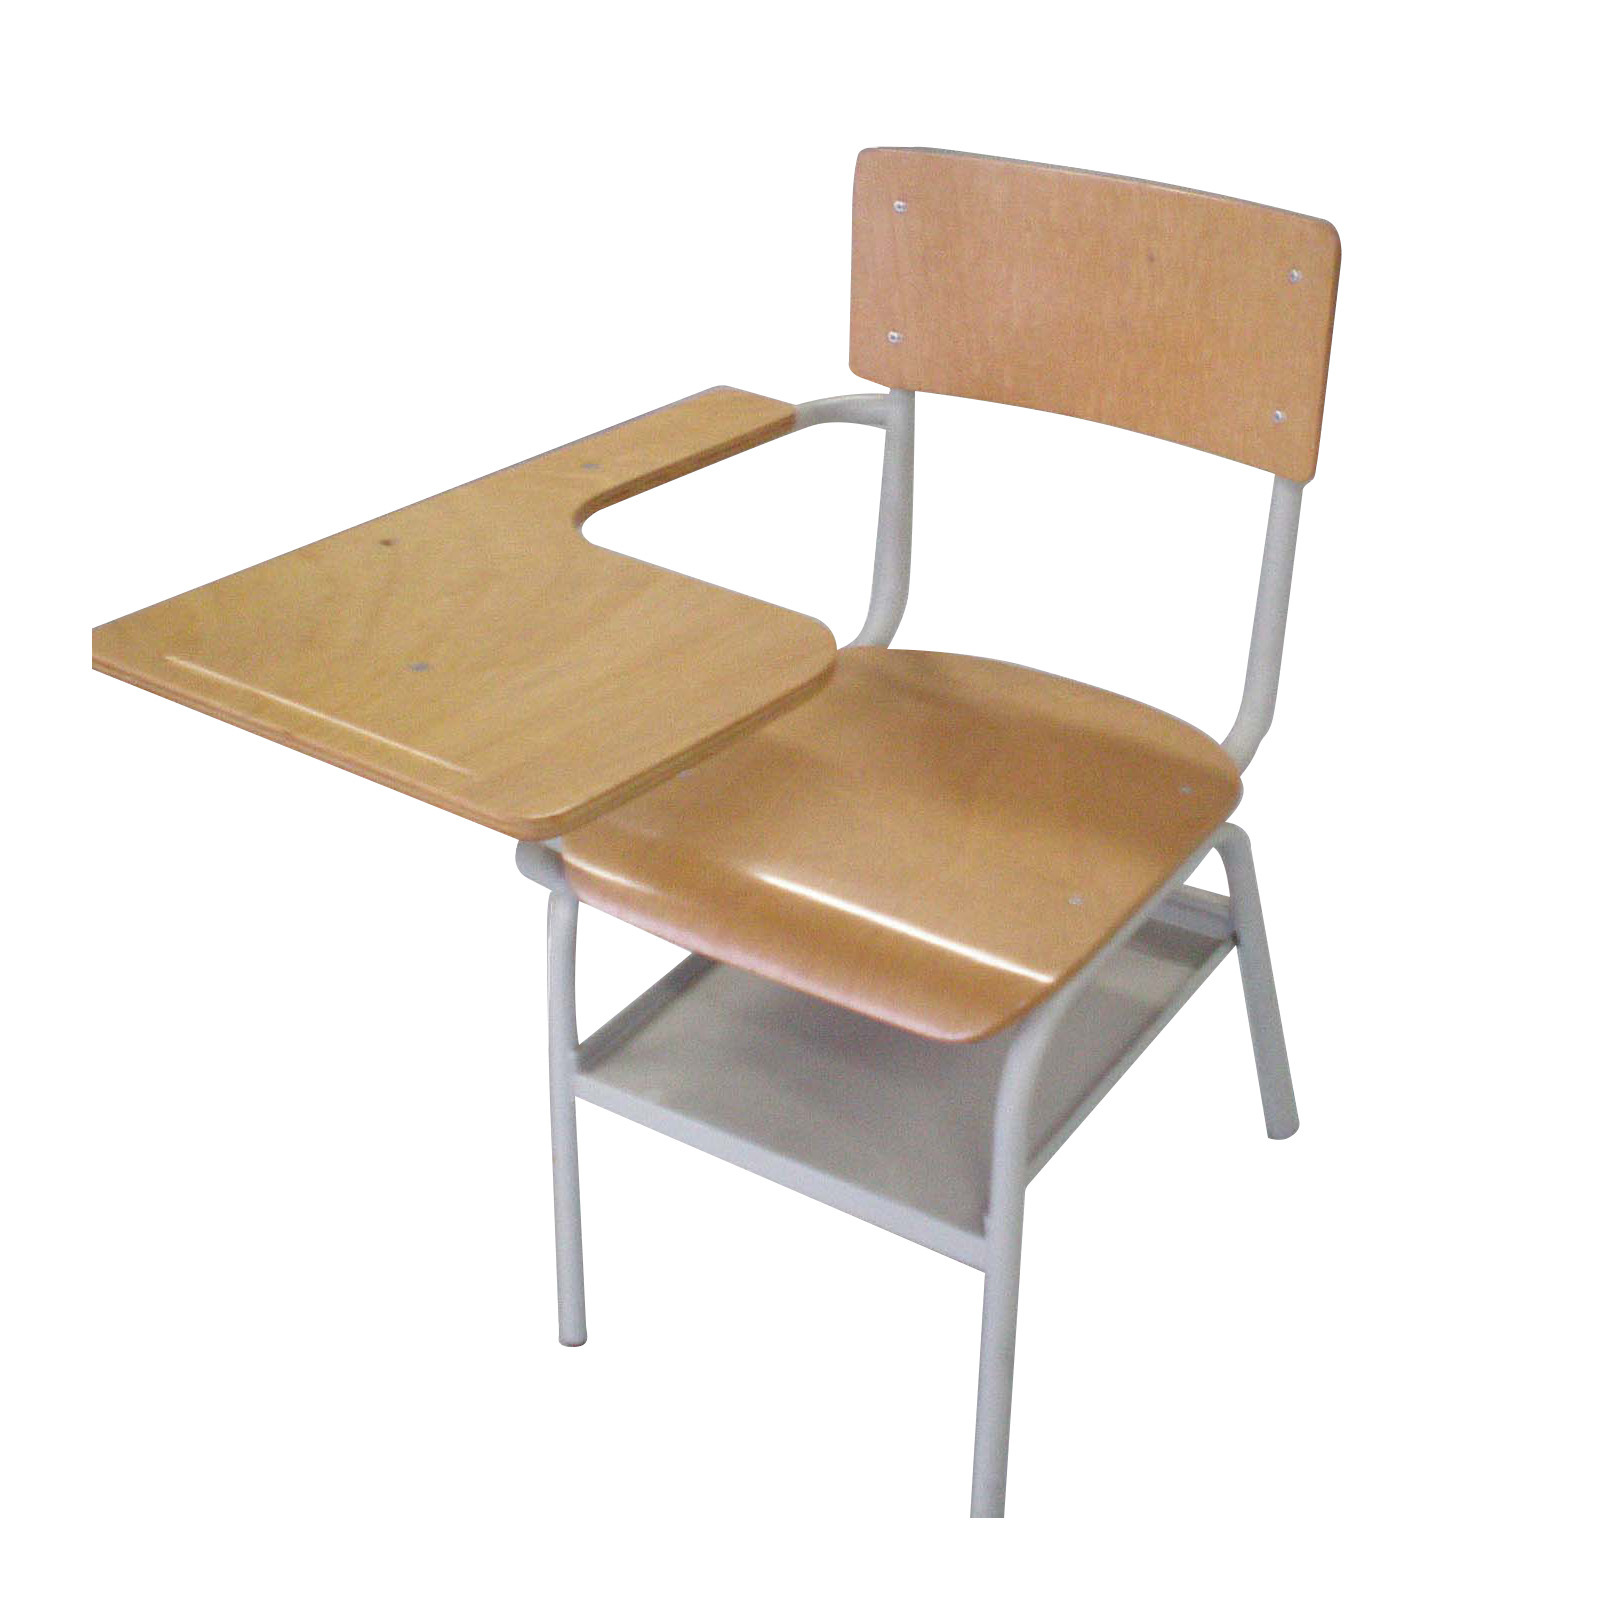 China School Desk and Chair Student Desk and Chair School